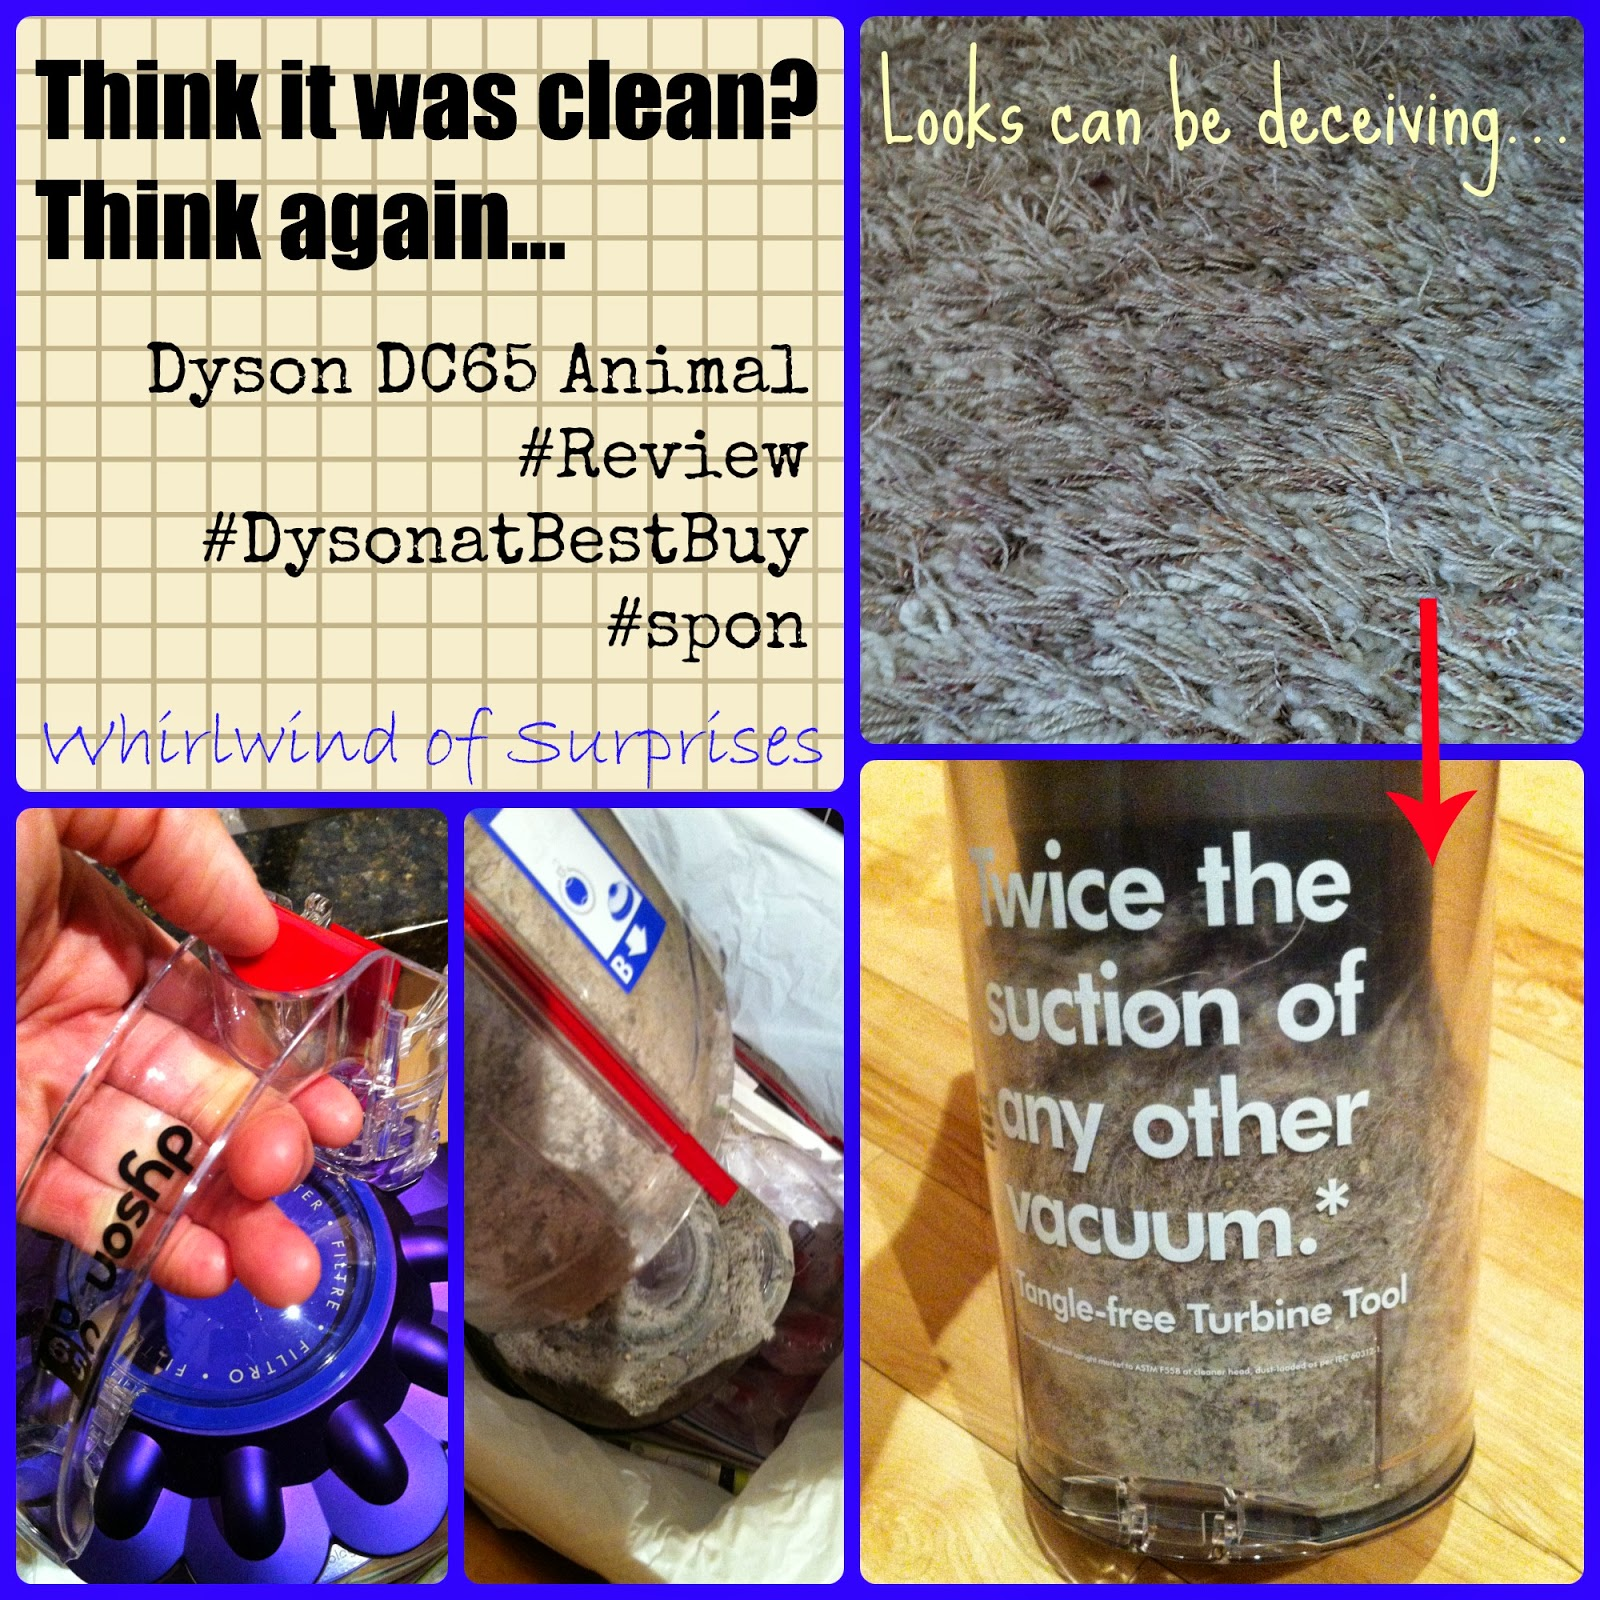 Cleaning power of the Dyson DC65 Animal amazes, #DysonatBestBuy #review